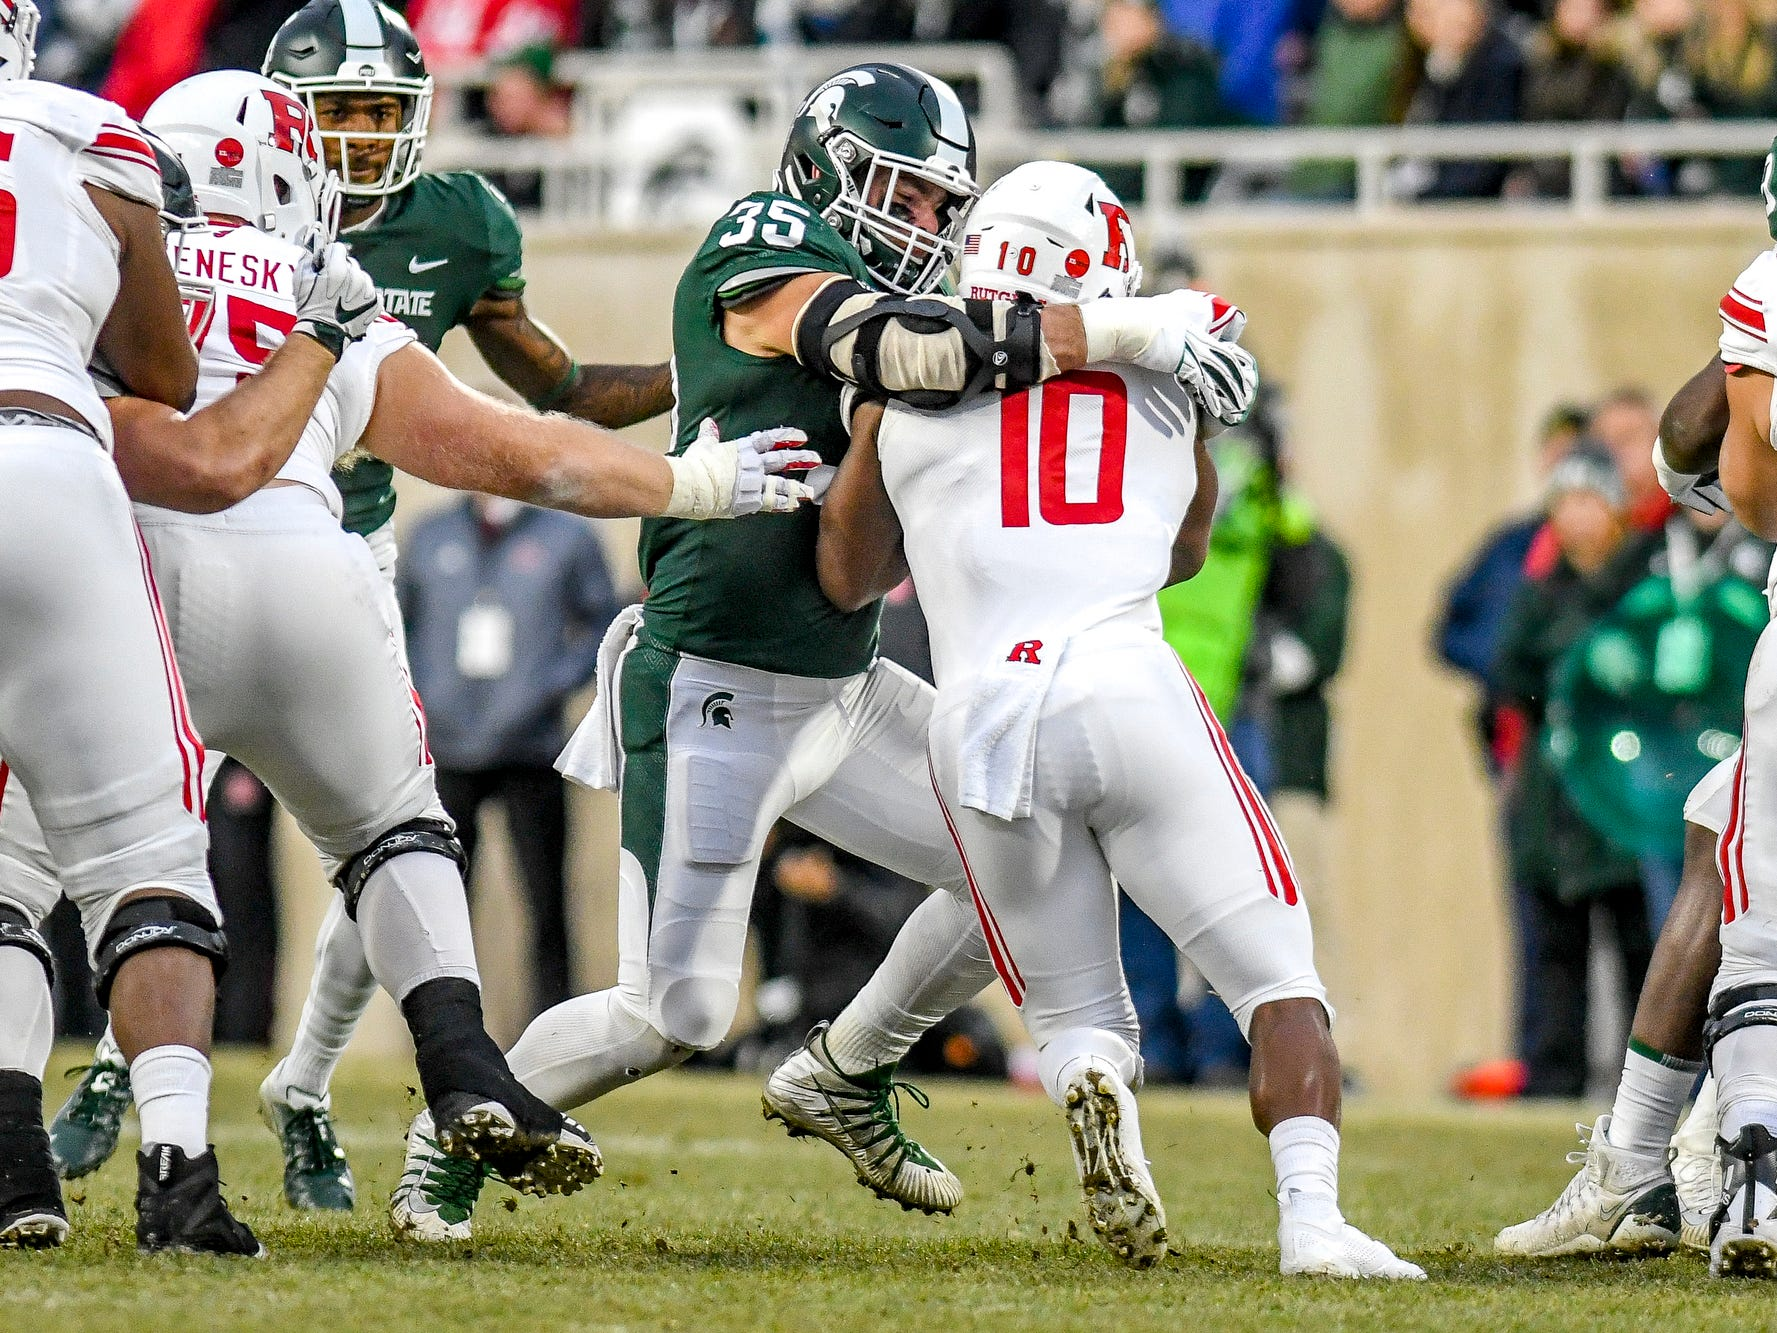 Michigan State's Joe Bachie, left, tackles Rutgers Isaih Pacheco during the first quarter on Saturday, Nov. 24, 2018, at Spartan Stadium in East Lansing.